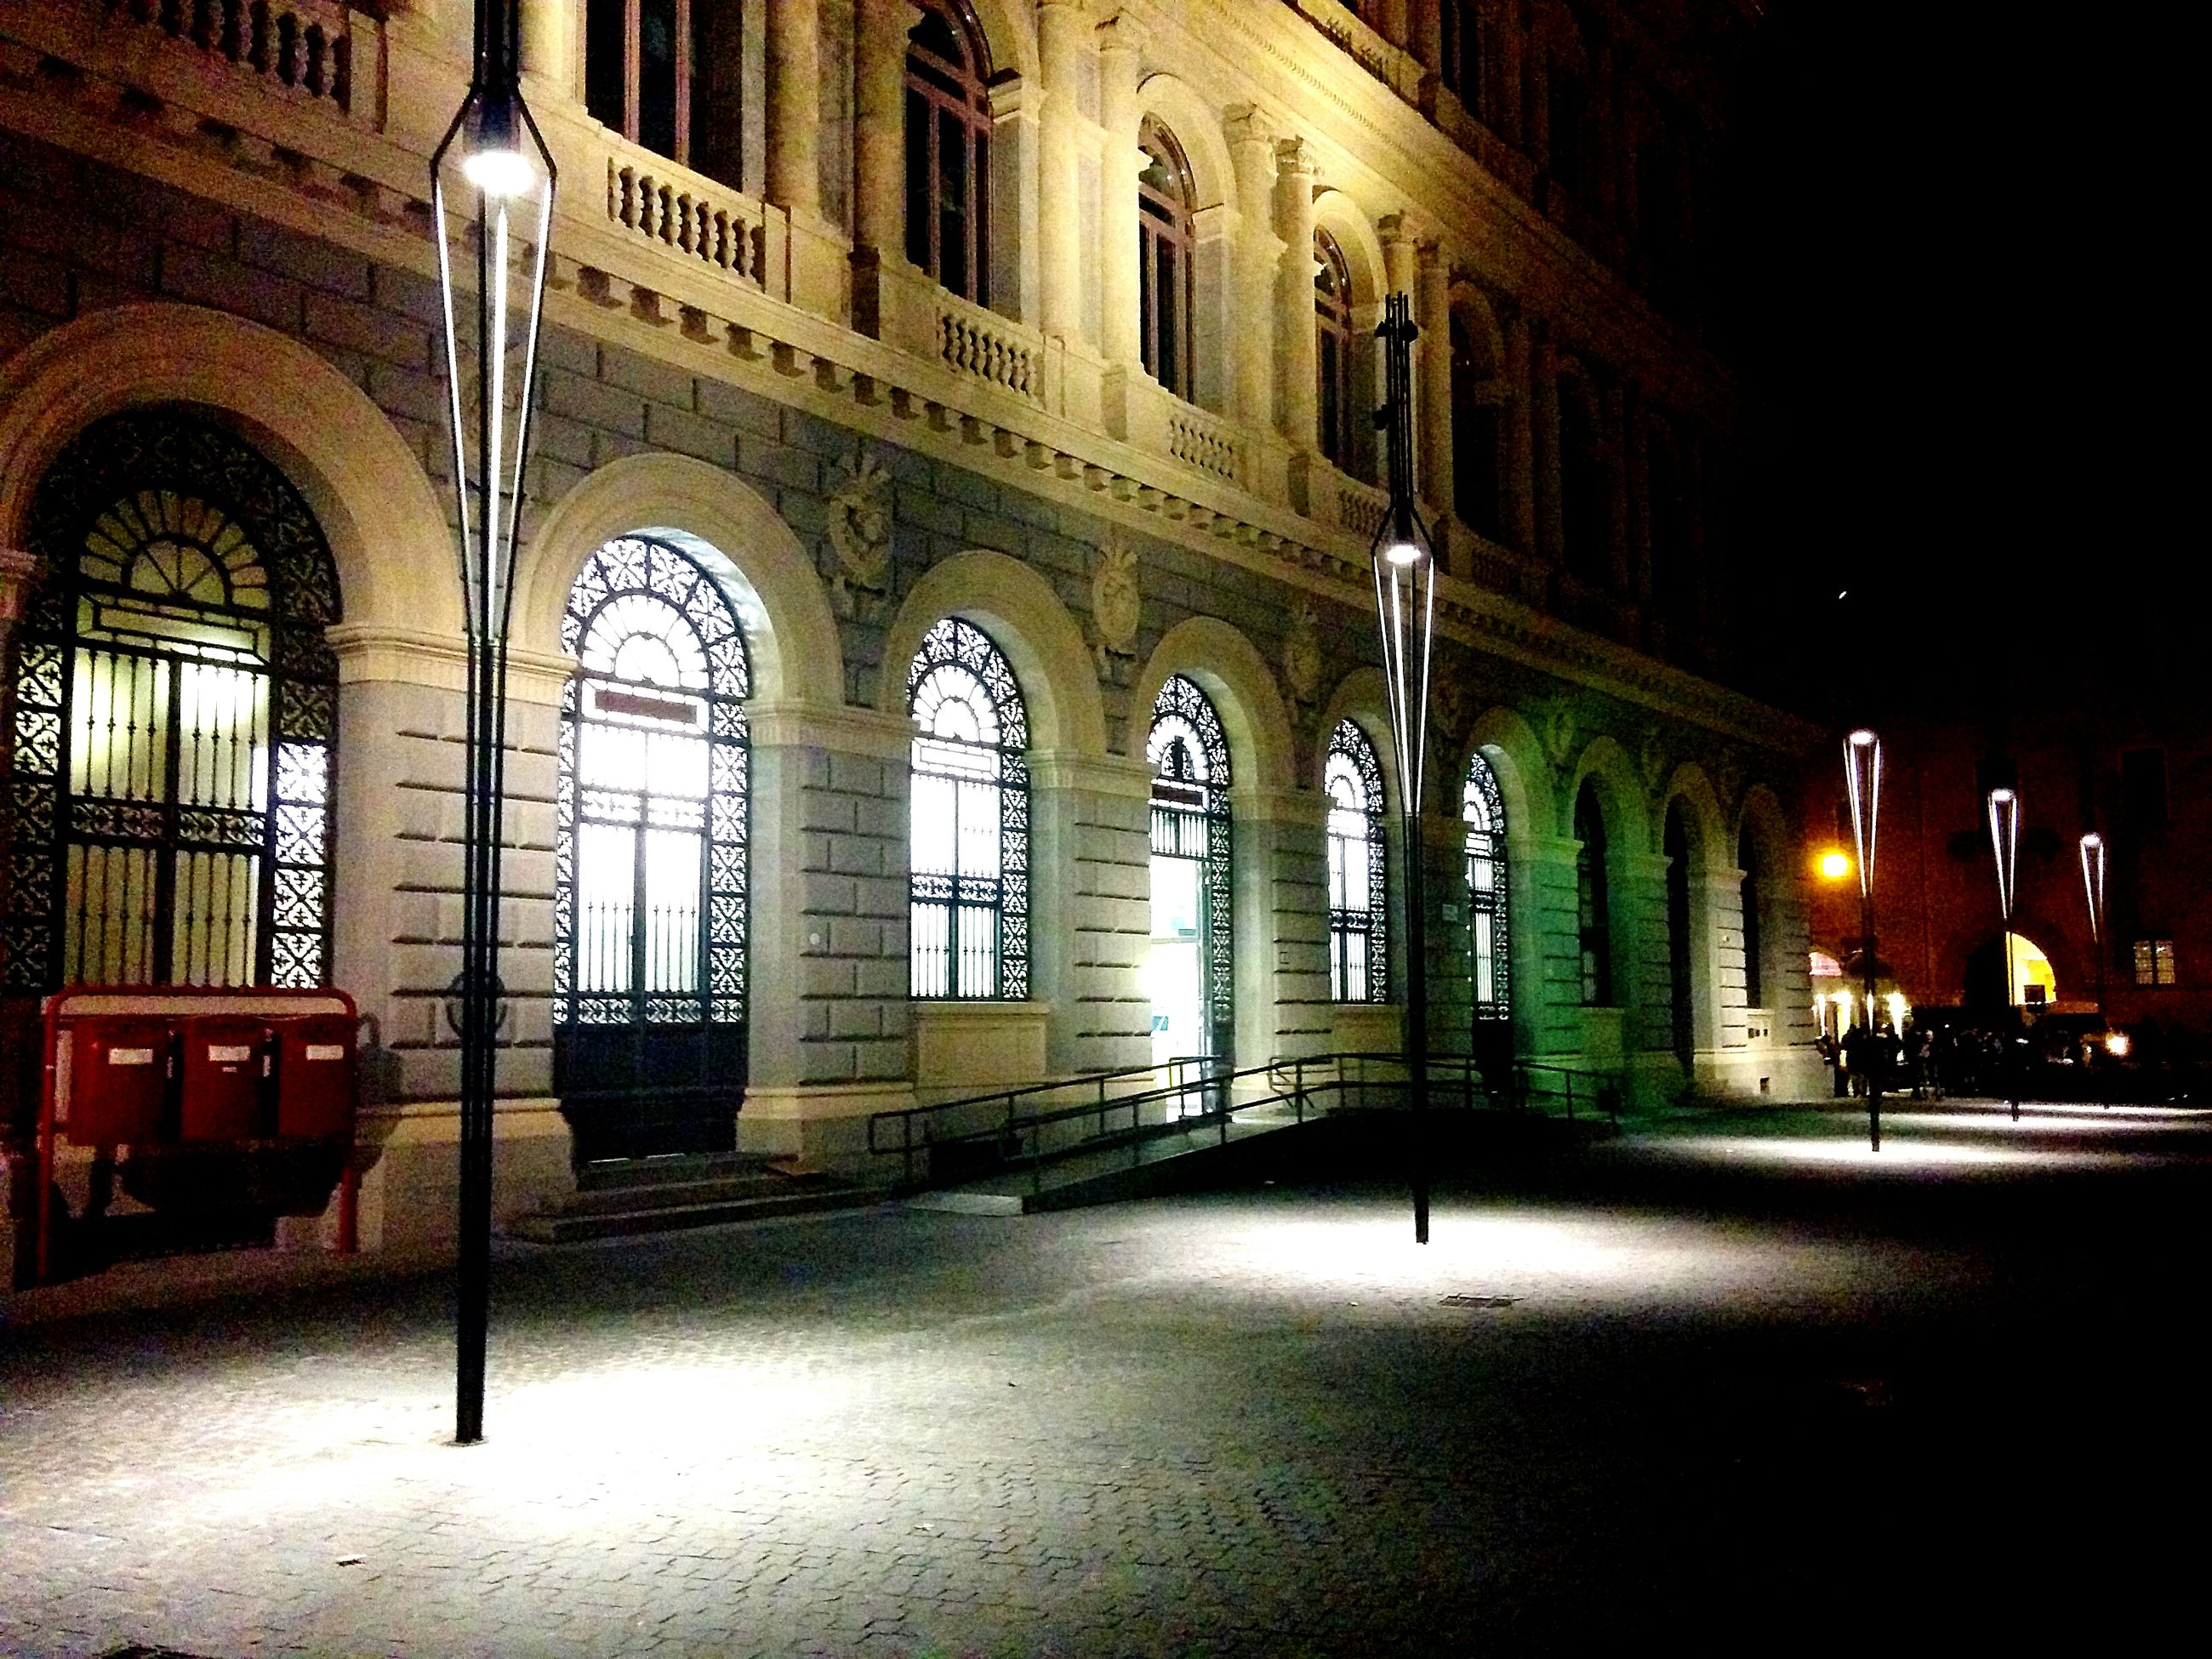 architecture, built structure, building exterior, illuminated, night, street, transportation, arch, city, street light, car, land vehicle, building, road, mode of transport, architectural column, incidental people, outdoors, lighting equipment, no people